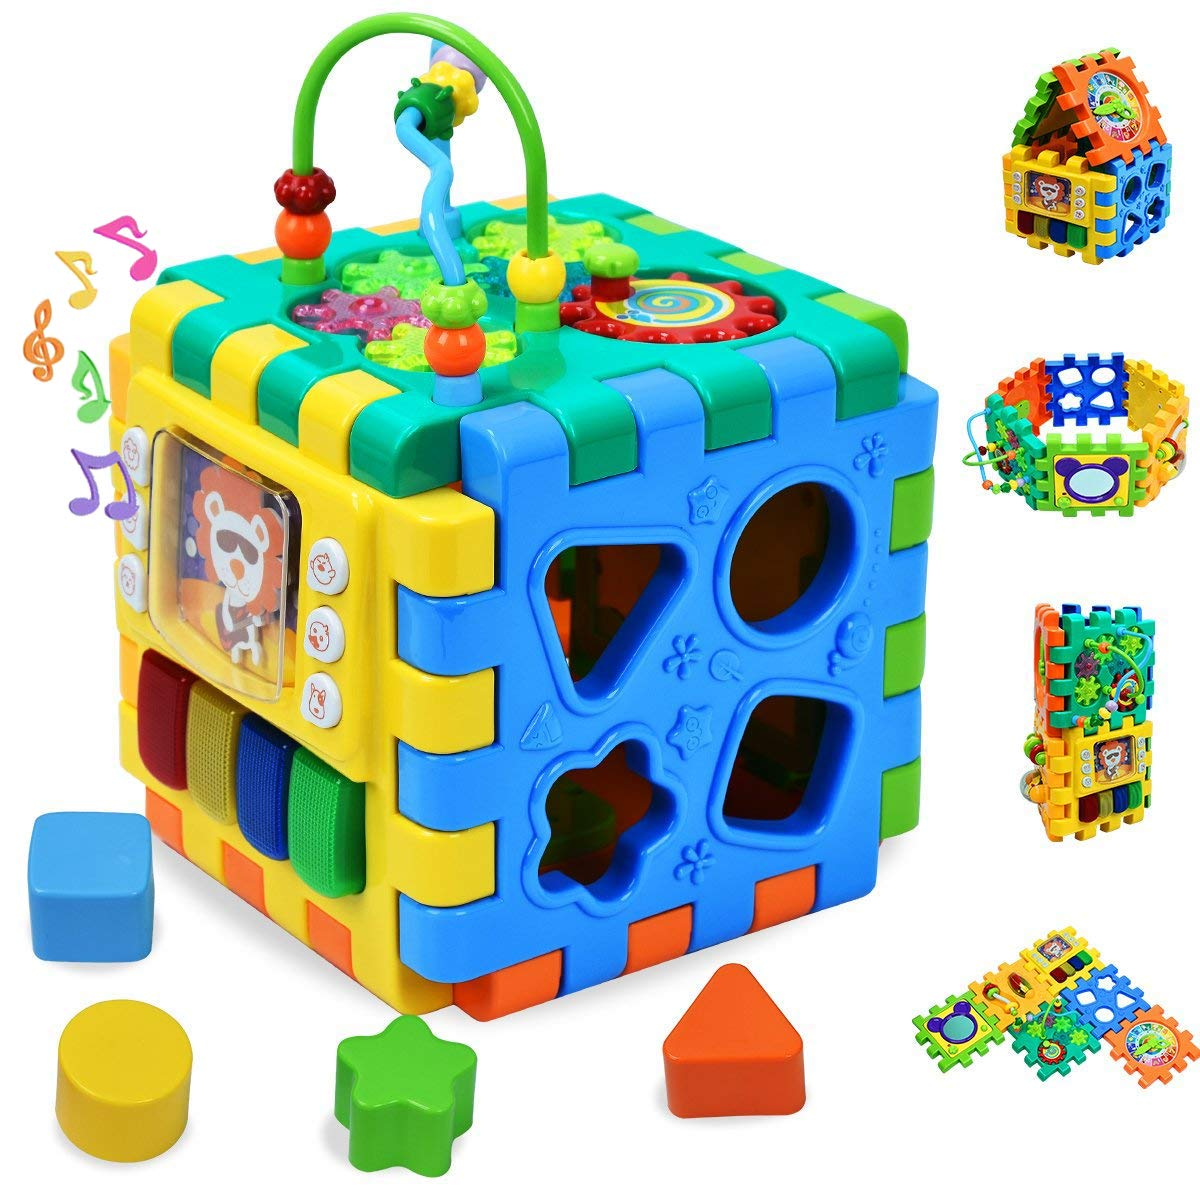 Forstart Activity Cube | 6 in 1 Multipurpose Play Center for Kids Toddlers Shape Color Sorter Beads Maze Time Learning Clock Skill Improvement Educational Game Toys Busy Learner Cube ML-A02GY-BAC-001